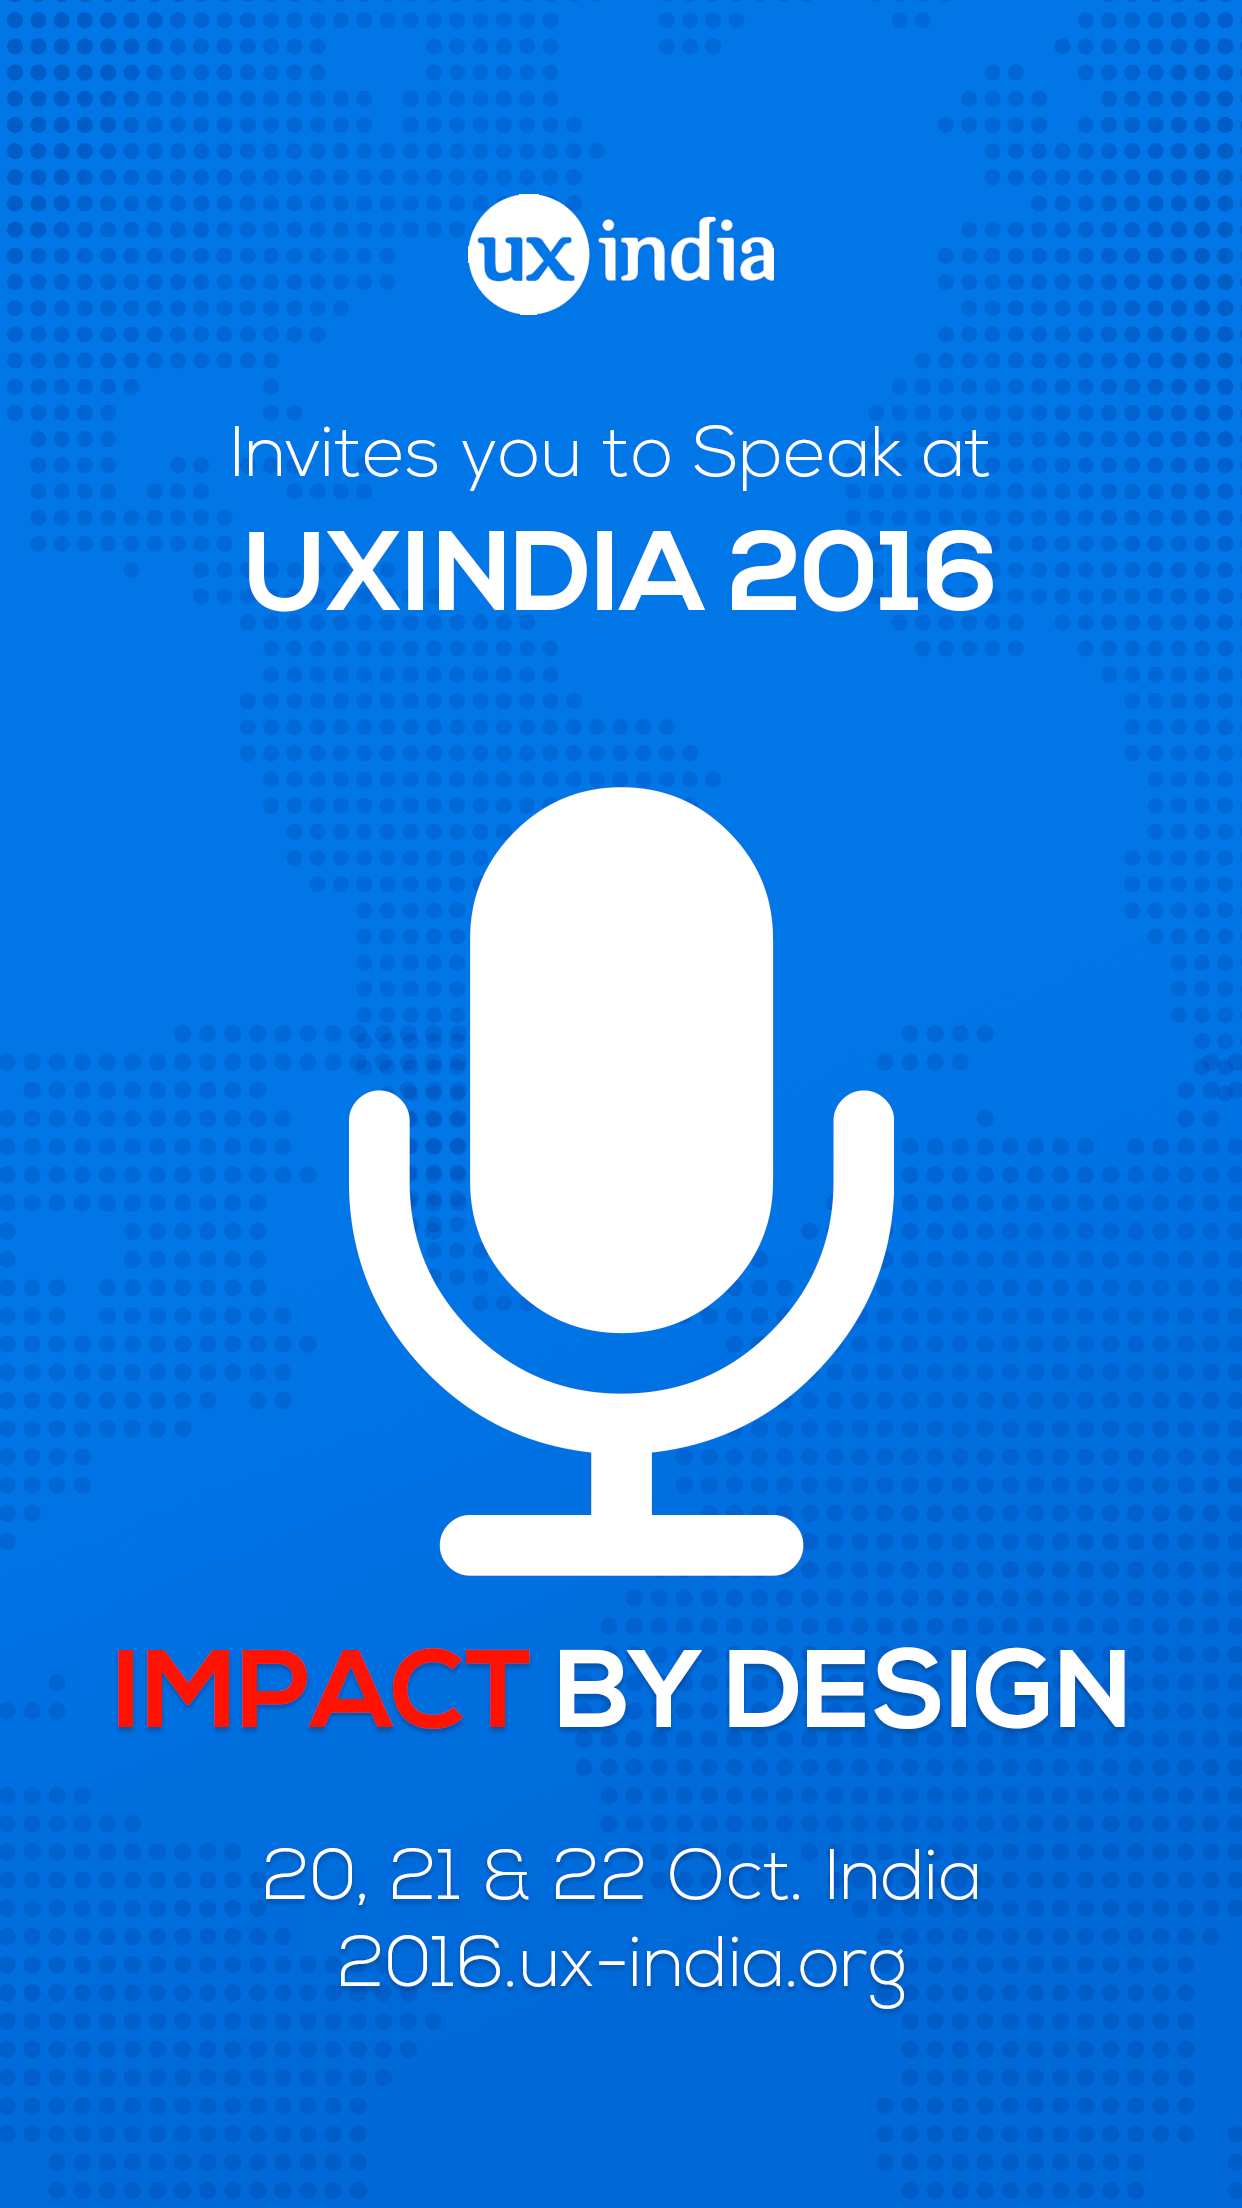 Submit your talk or workshop at UXINDIA 2016 : Driving value through customer experience